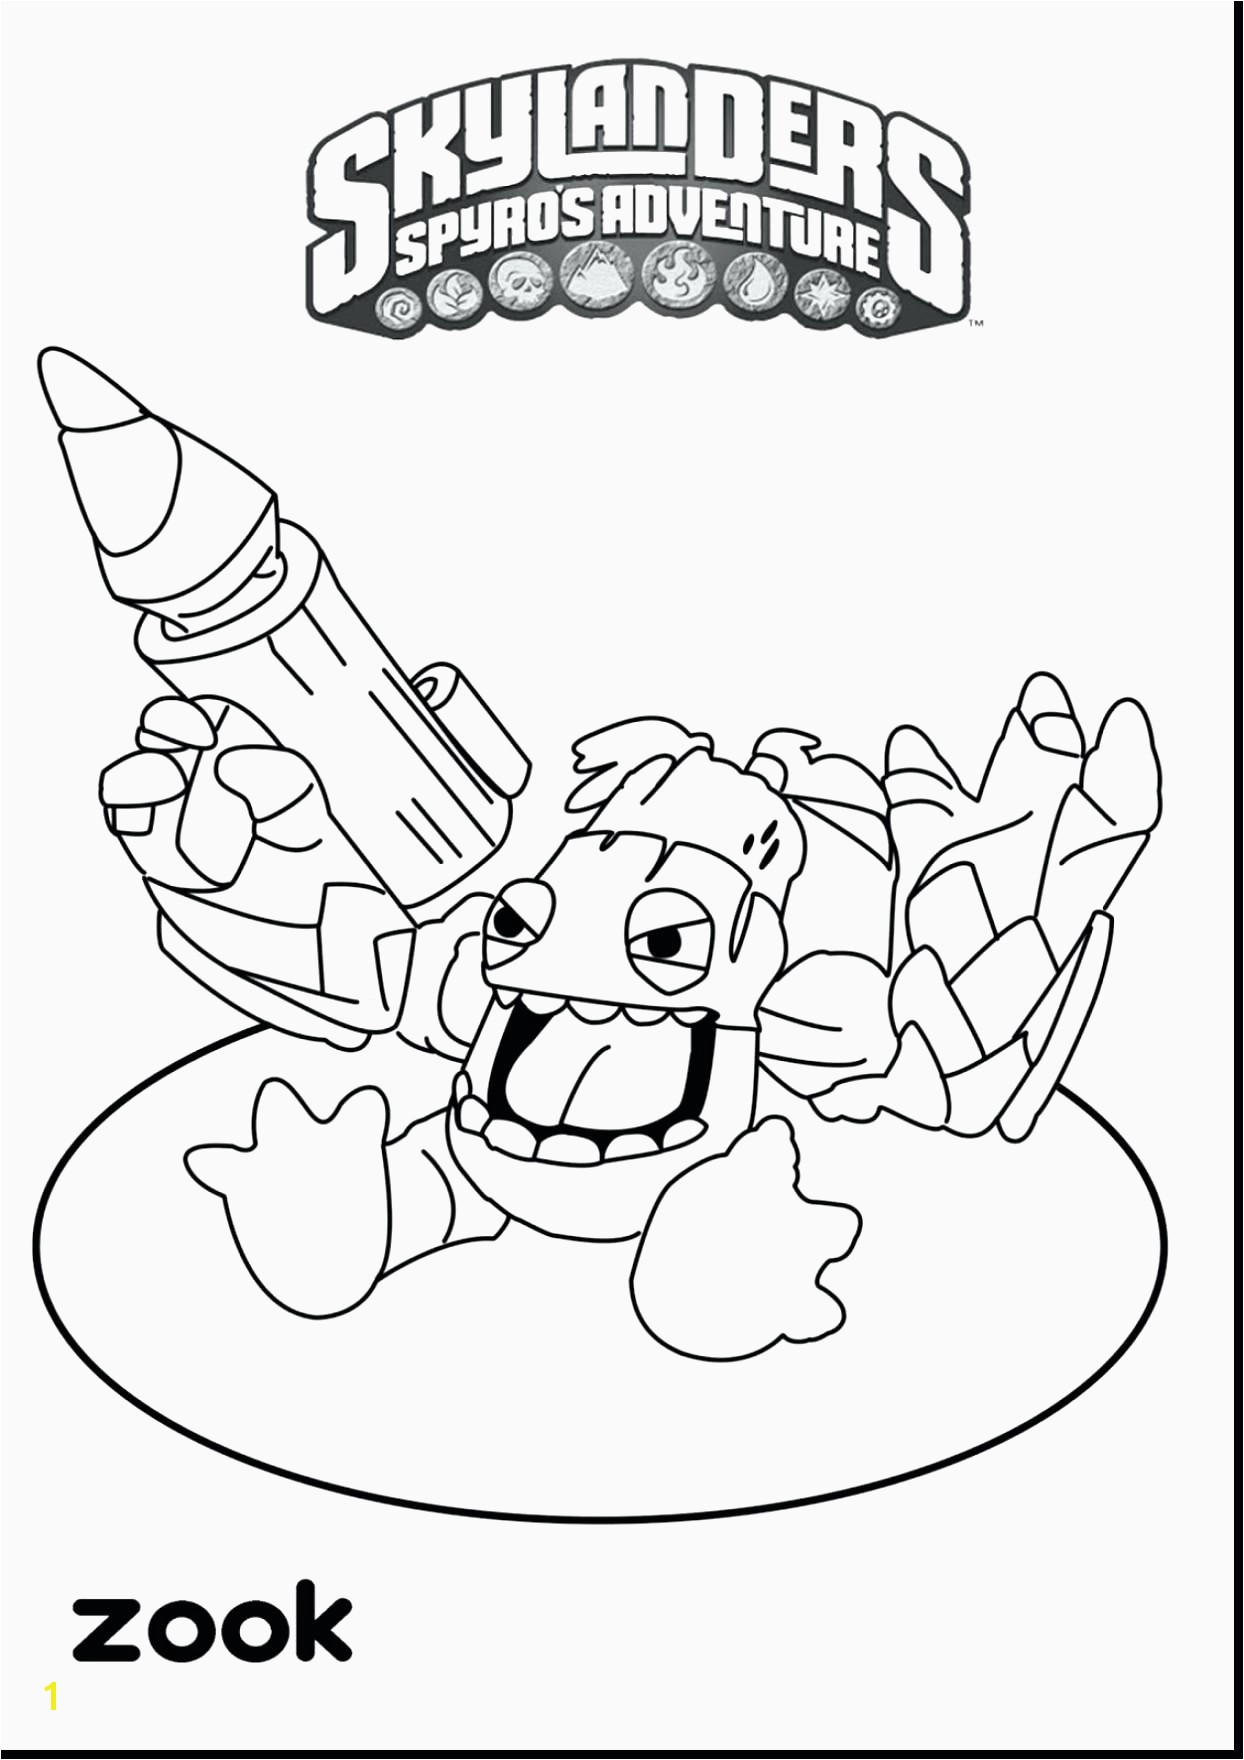 Gallery Woman at the Well Coloring Page Unique Printable Free Coloring Pages Elegant Crayola Pages 0d Archives Se